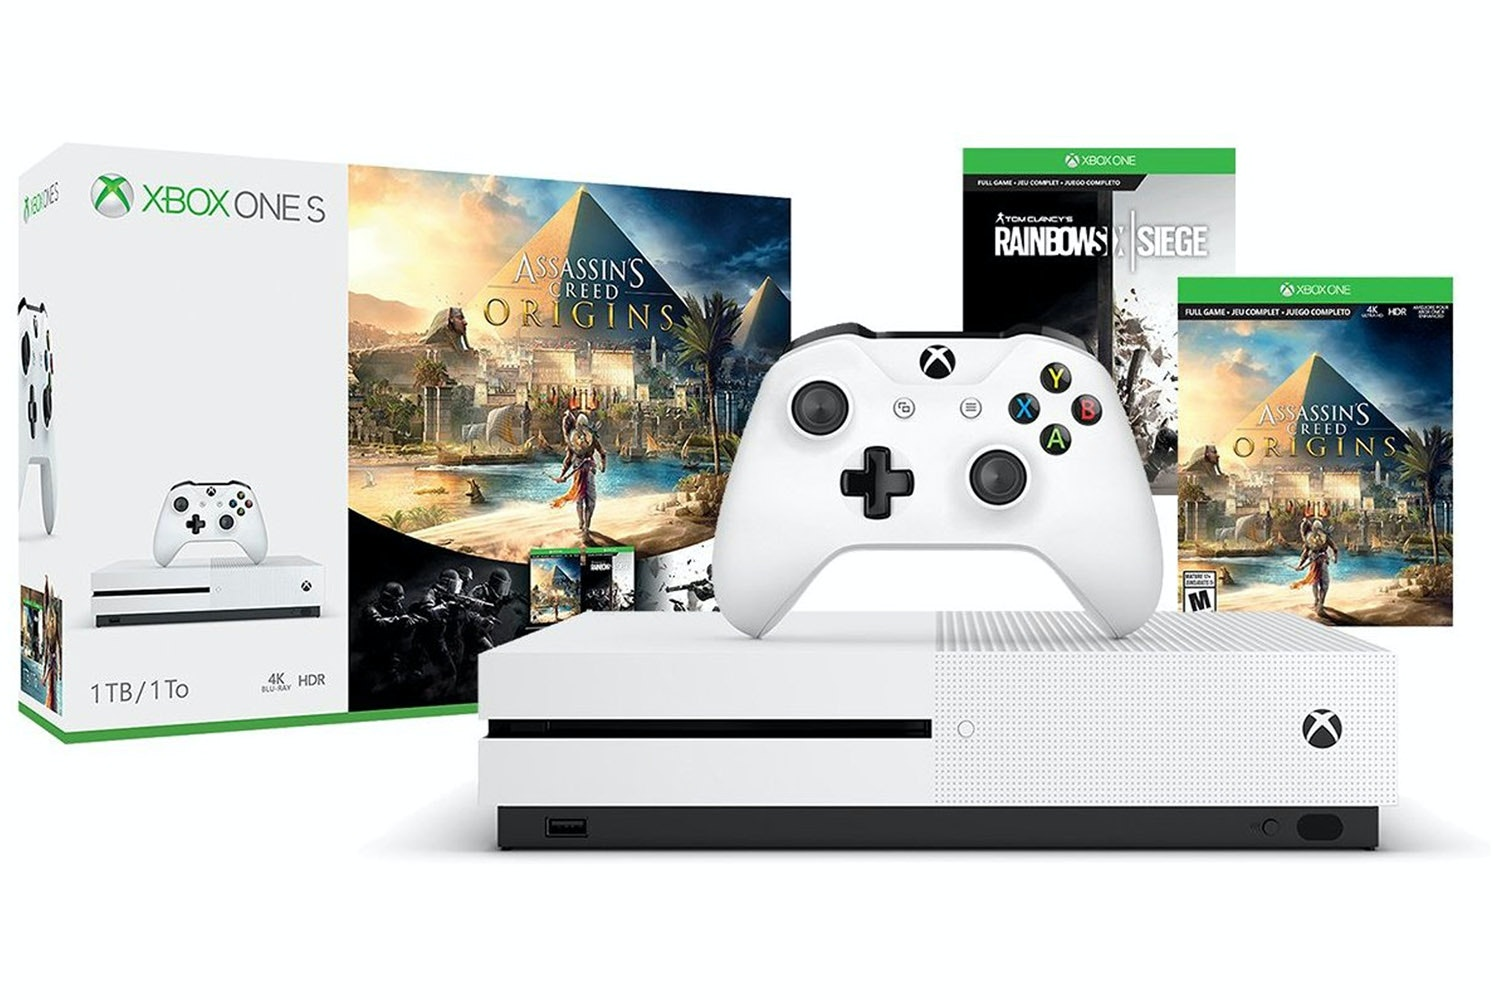 Xbox One S | 1TB with Assassin's Creed Origins & Rainbow 6 Siege